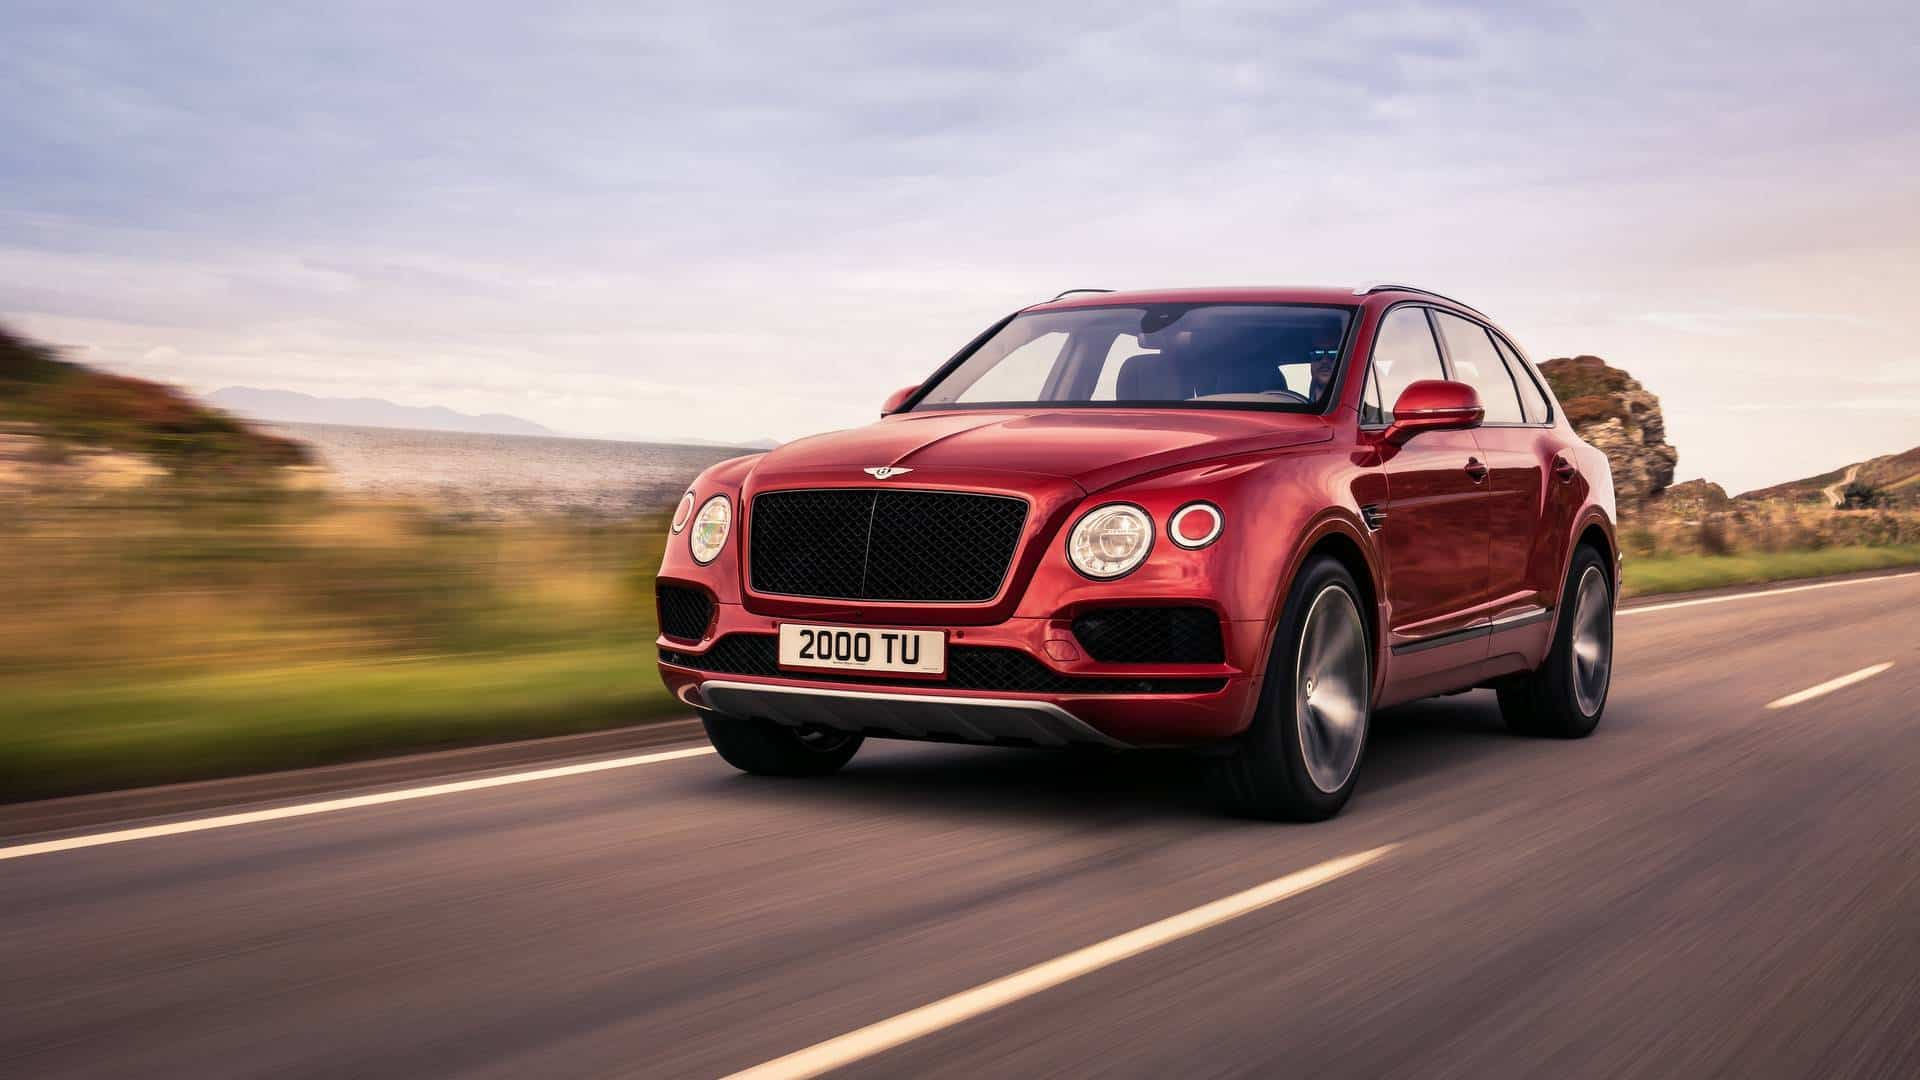 The Bentley Bentayga V8 is Here to Make Some Noise